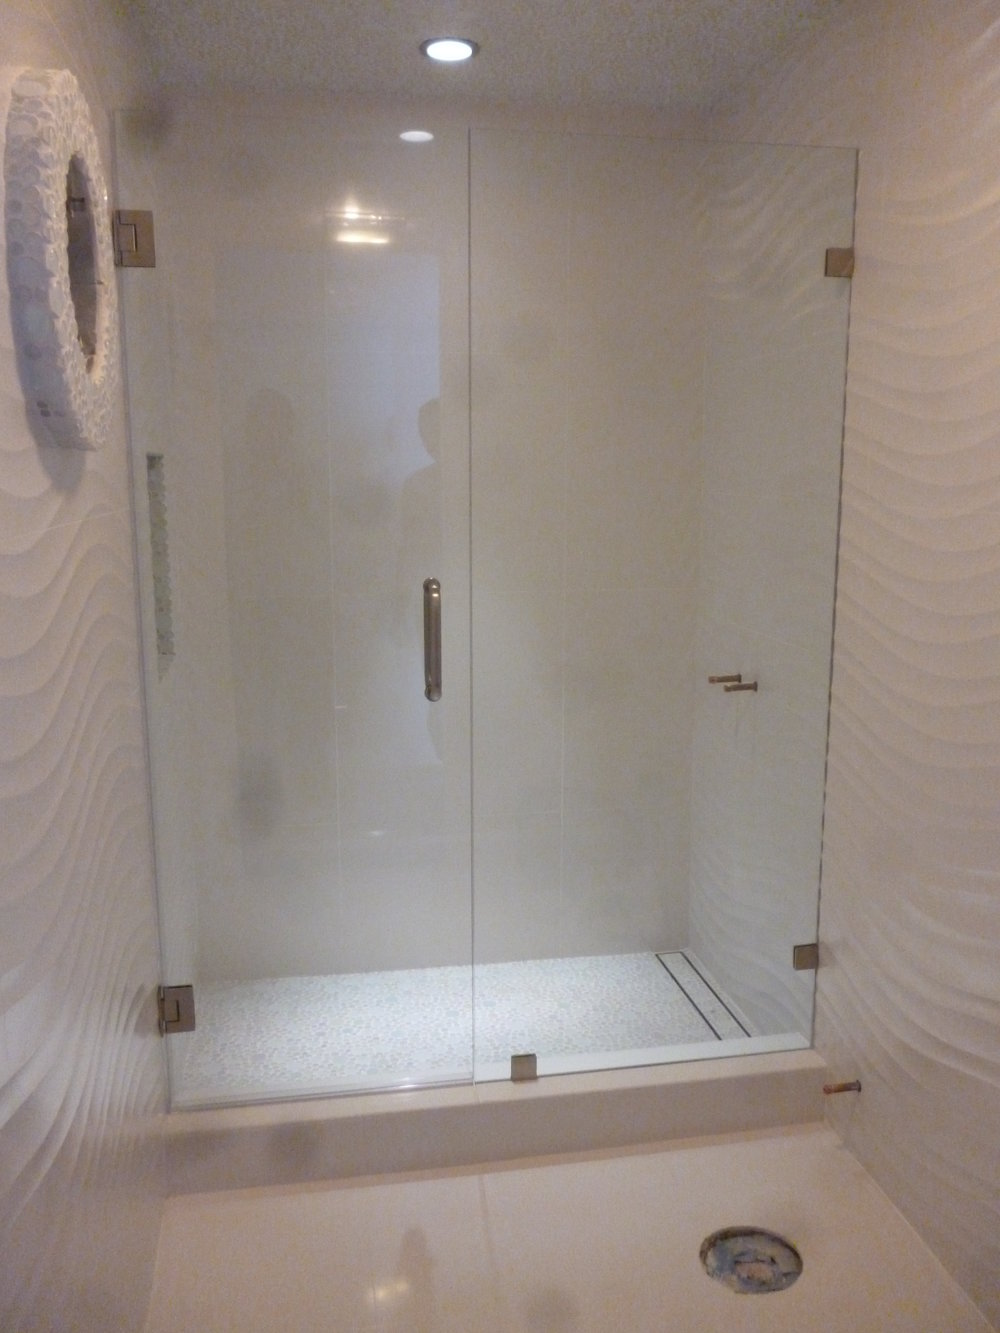 Shower-Doors-Residential-Photos-21.jpg